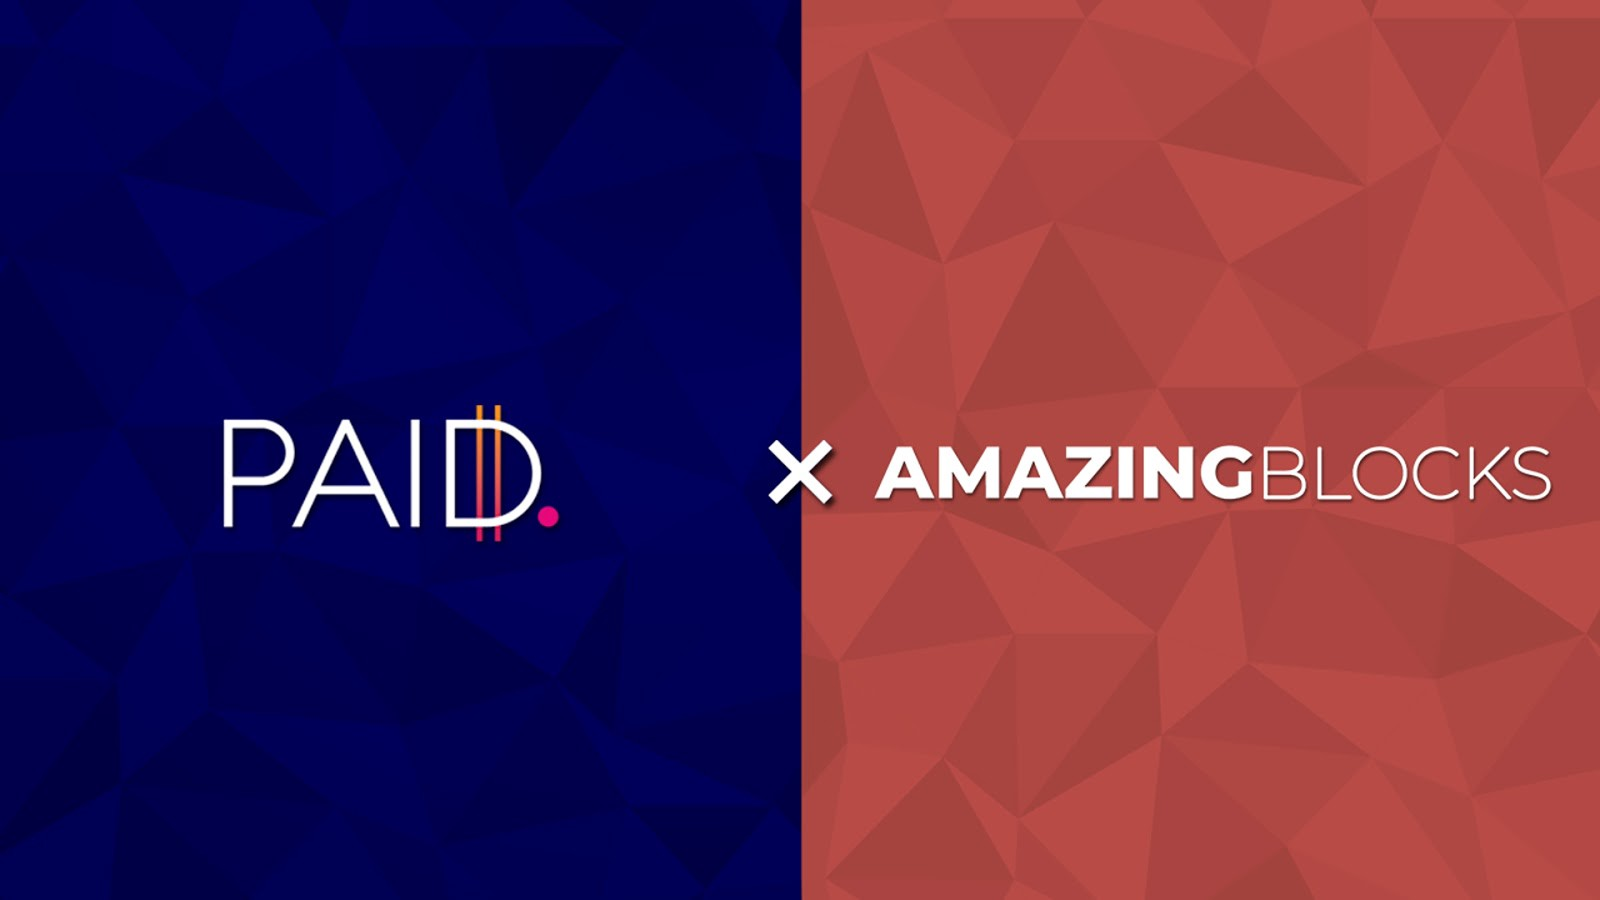 Paid Network Partners with Amazing Blocks